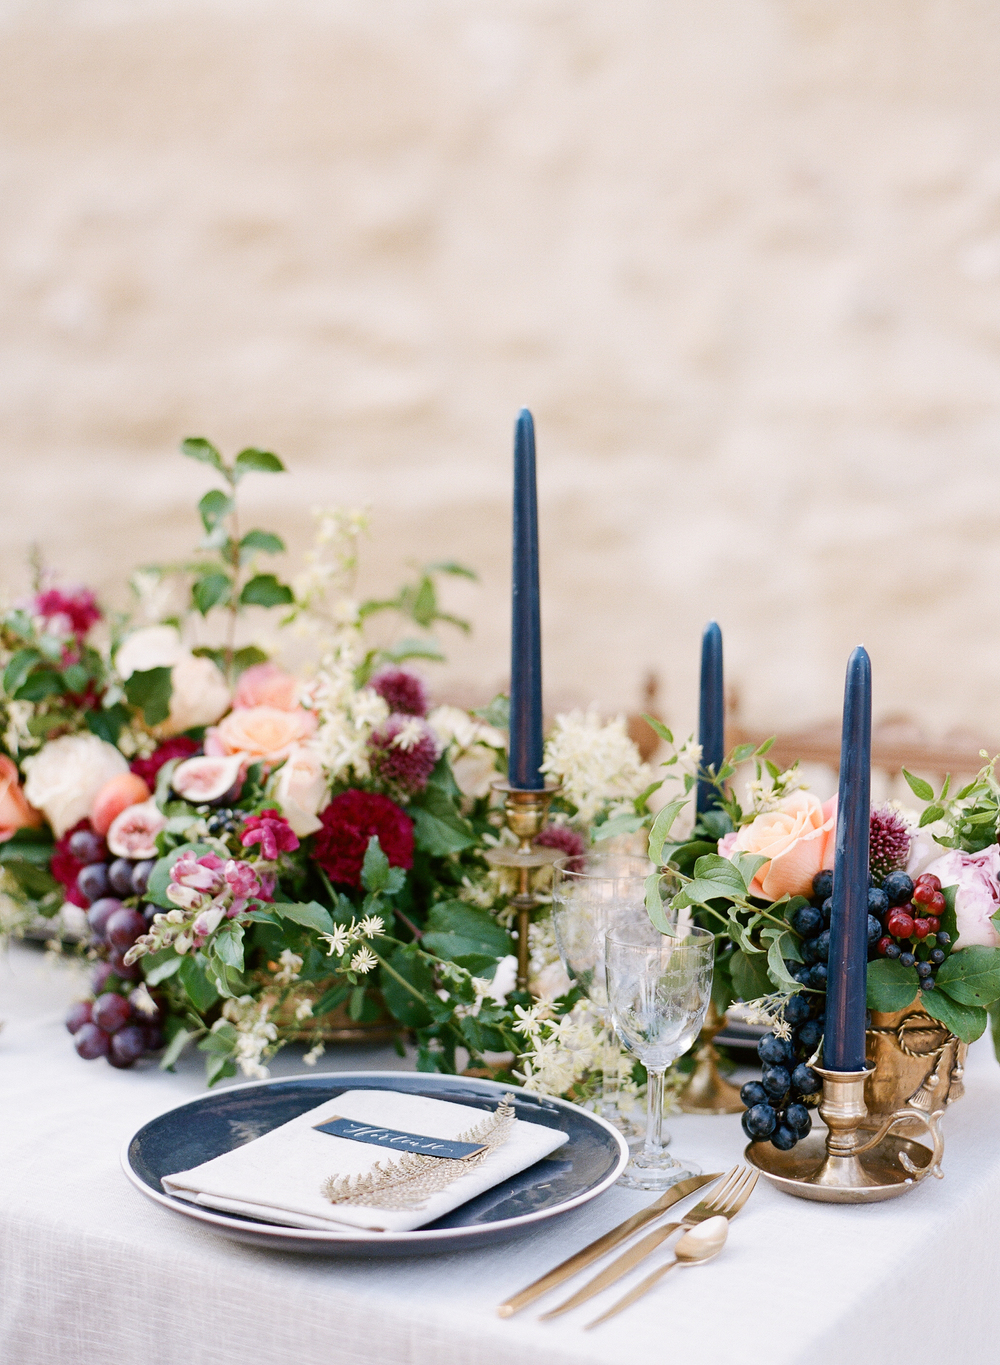 Navy and gold place settings compliment a relaxed and rustic centerpiece featuring colorful florals and fruits; photo by Sylvie Gil